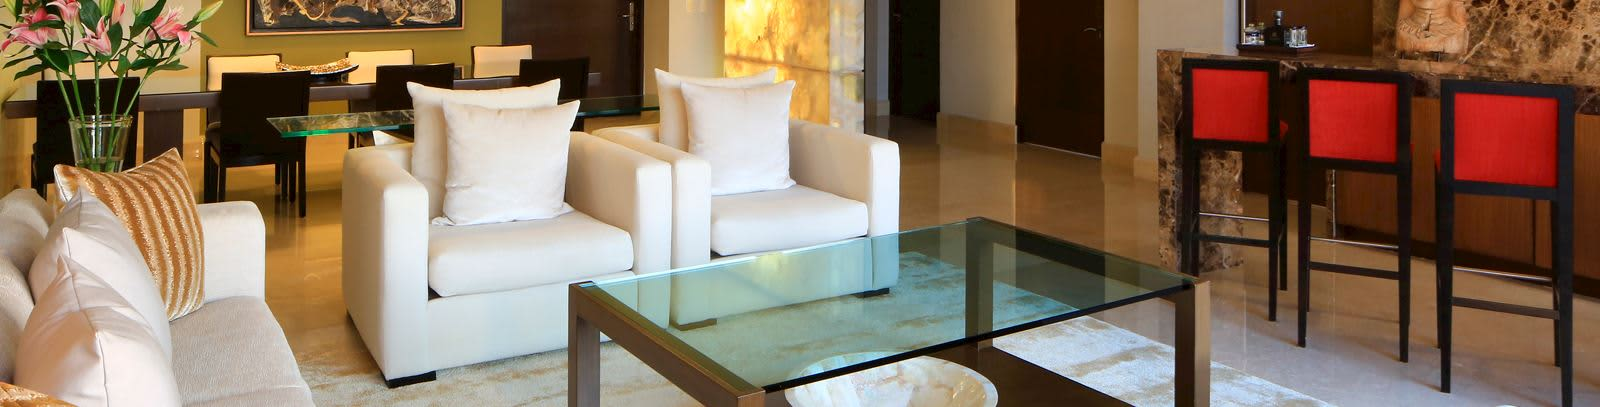 Suite Grand Class Presidencial Frente al Mar en Grand Velas Riviera Maya